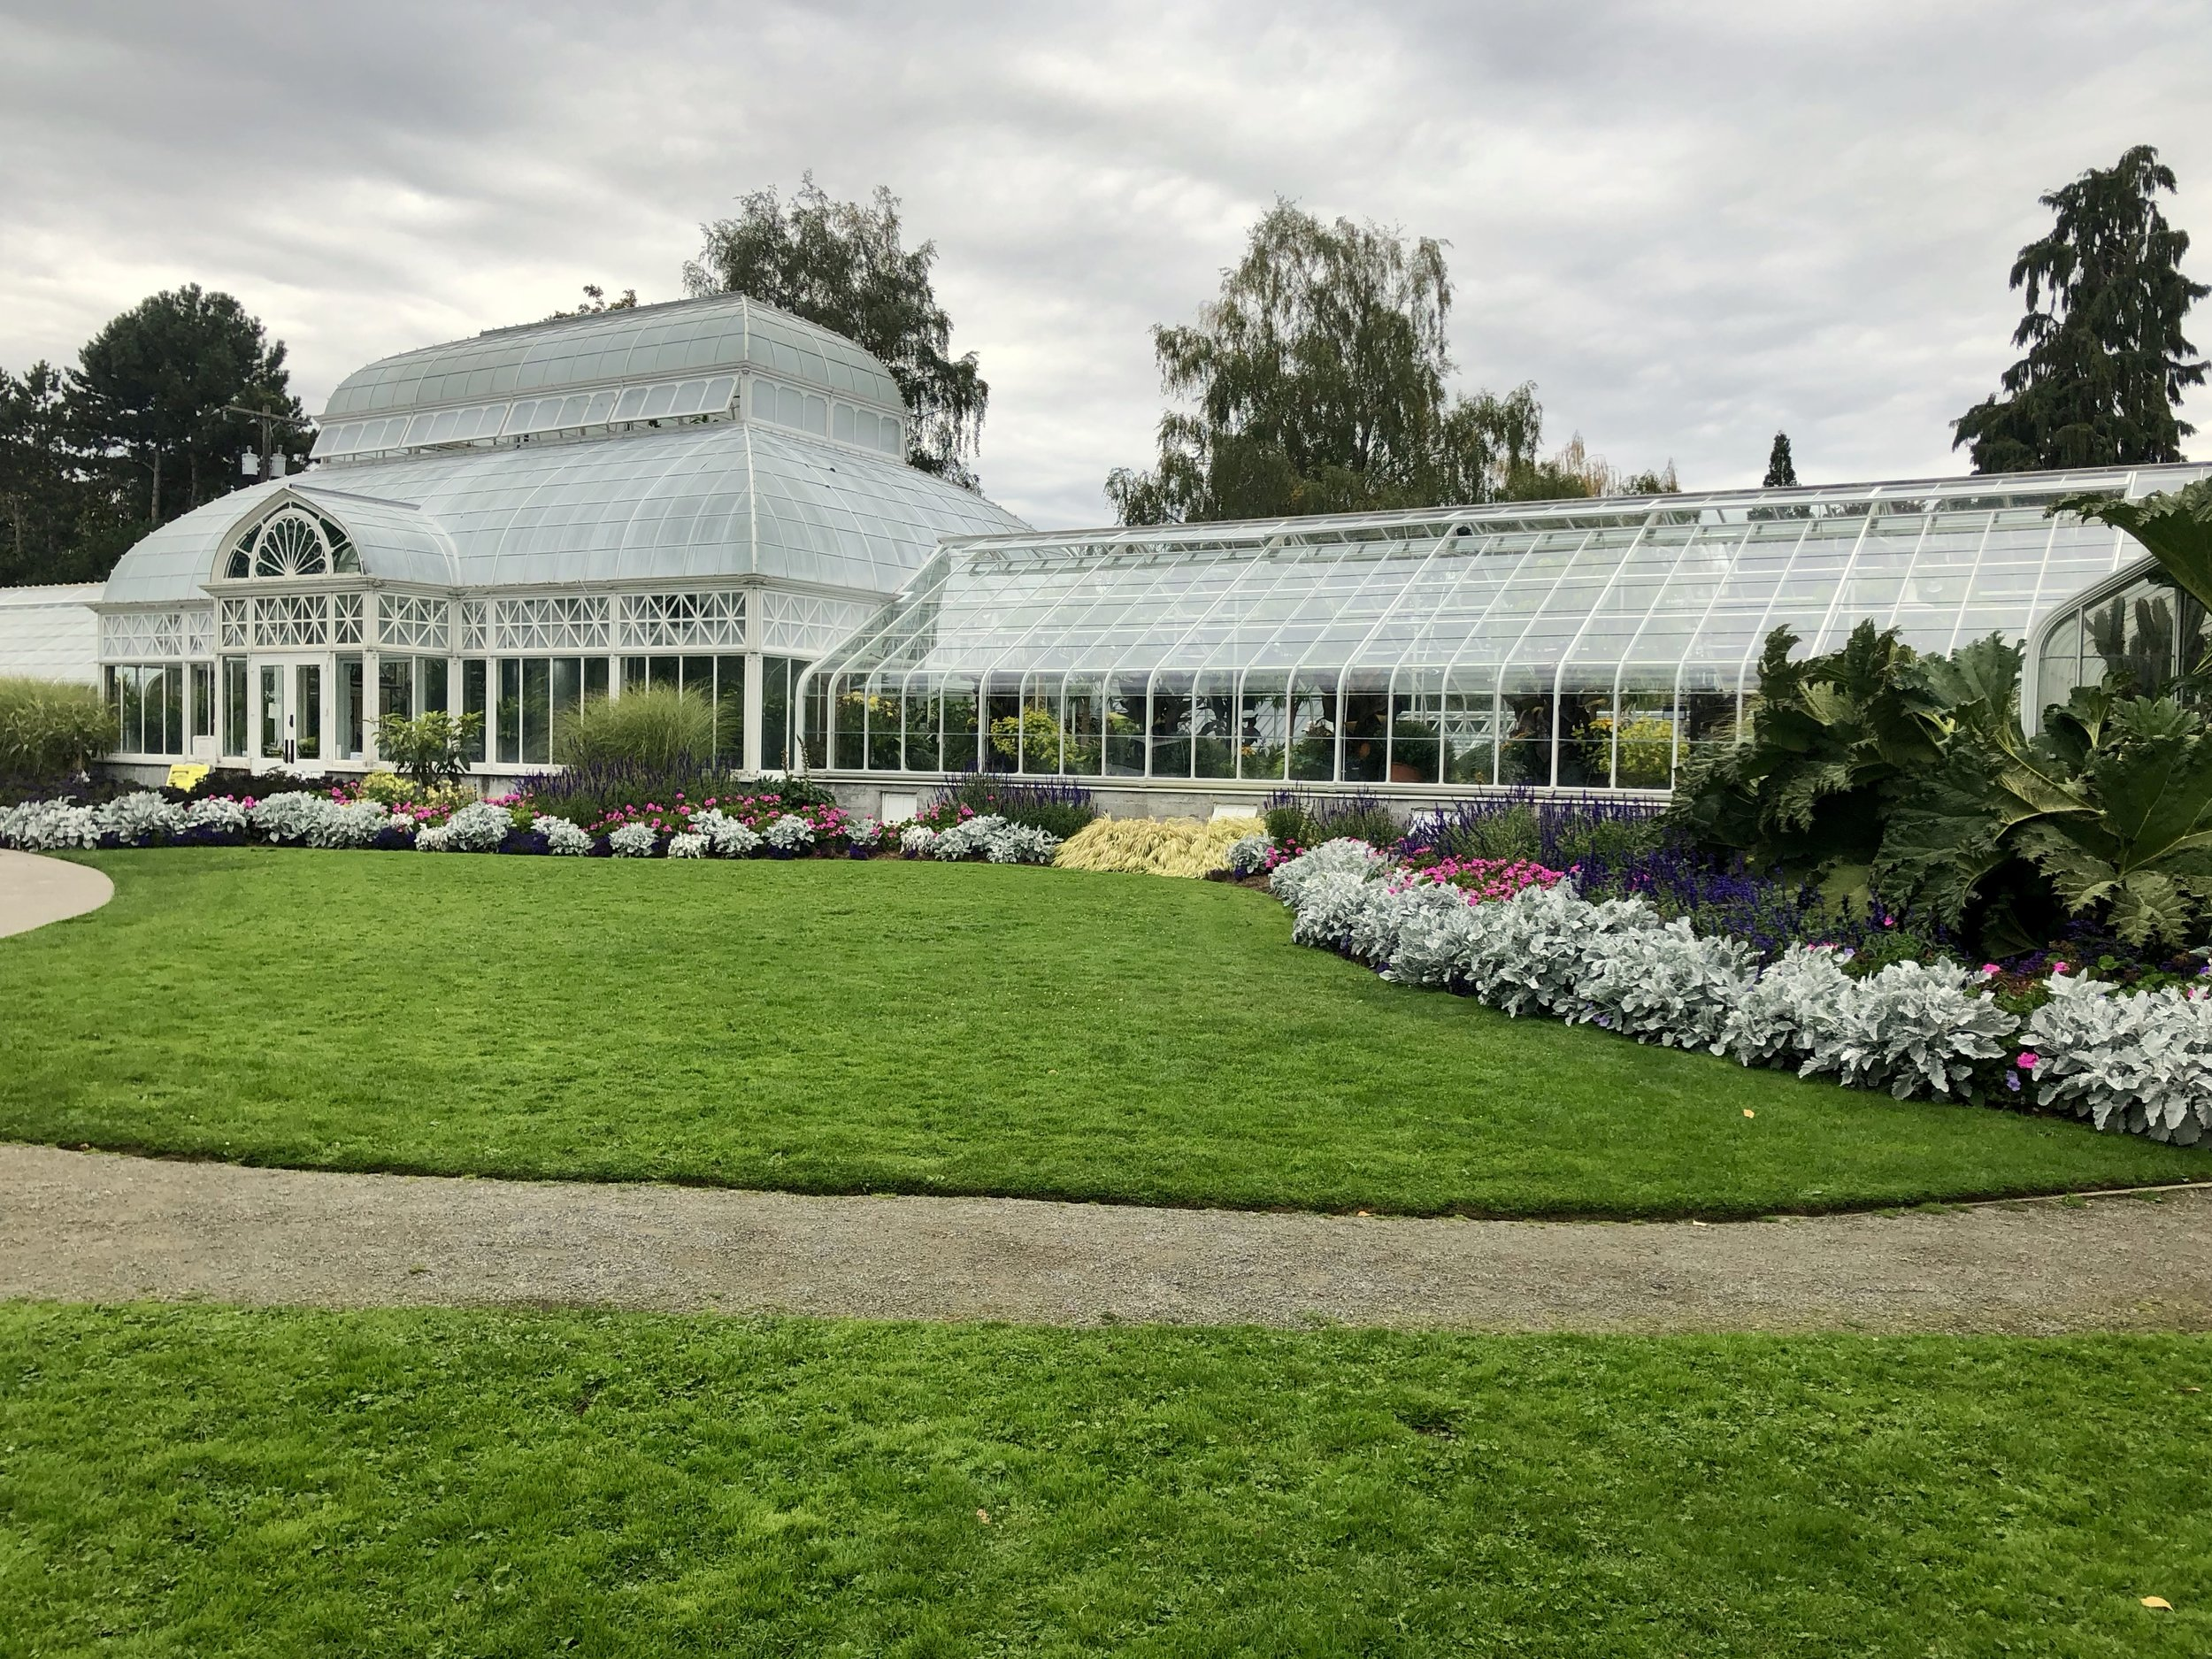 The conservatory in Volunteer Park